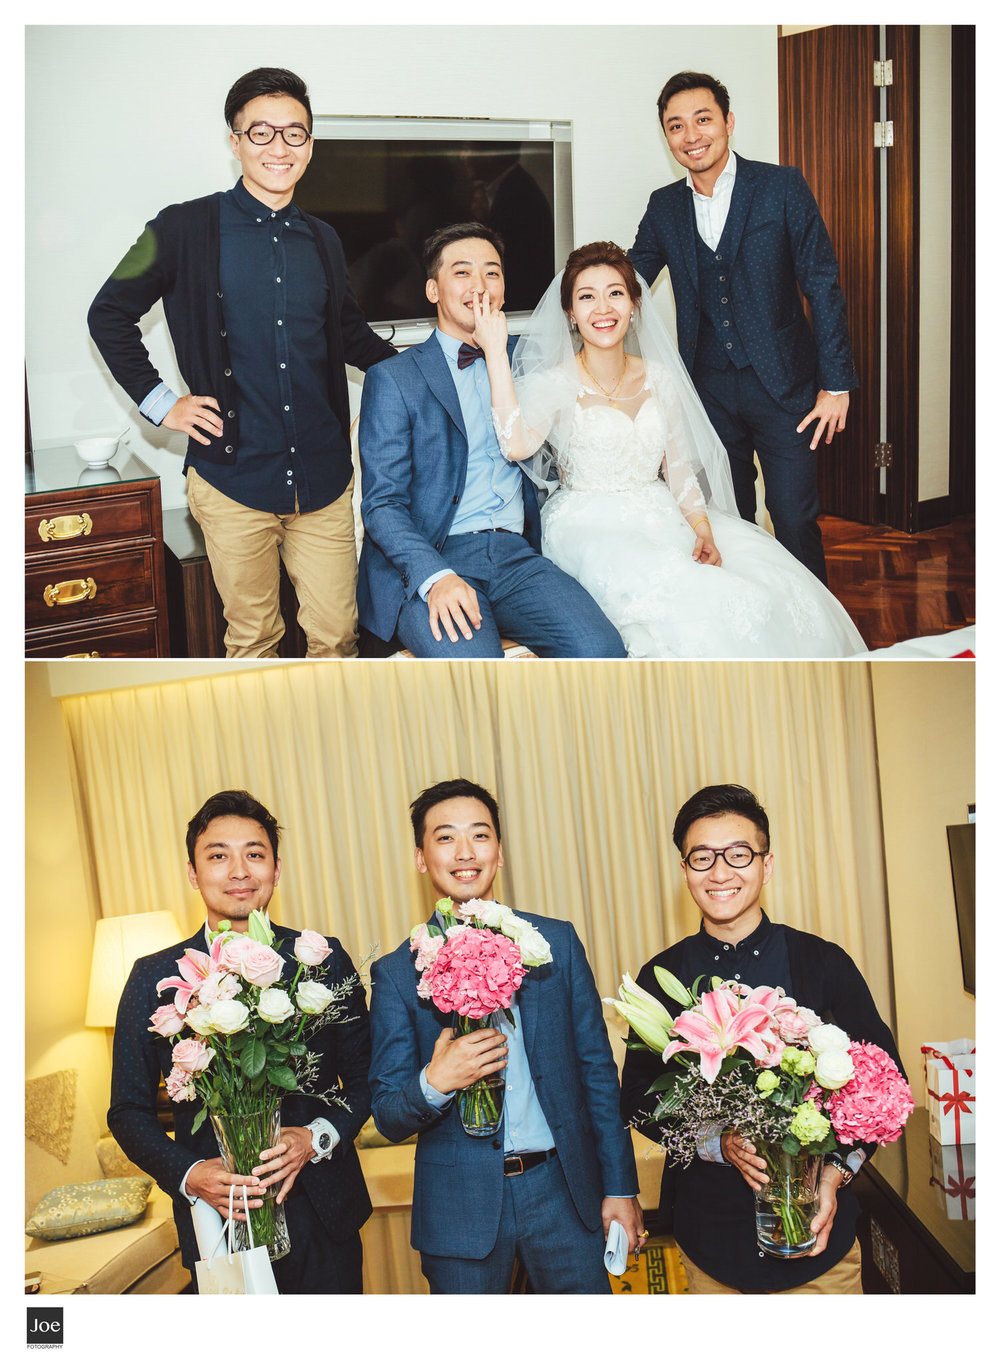 joe-fotography-the-grand-hotel-wedding-ani-mo-61.jpg